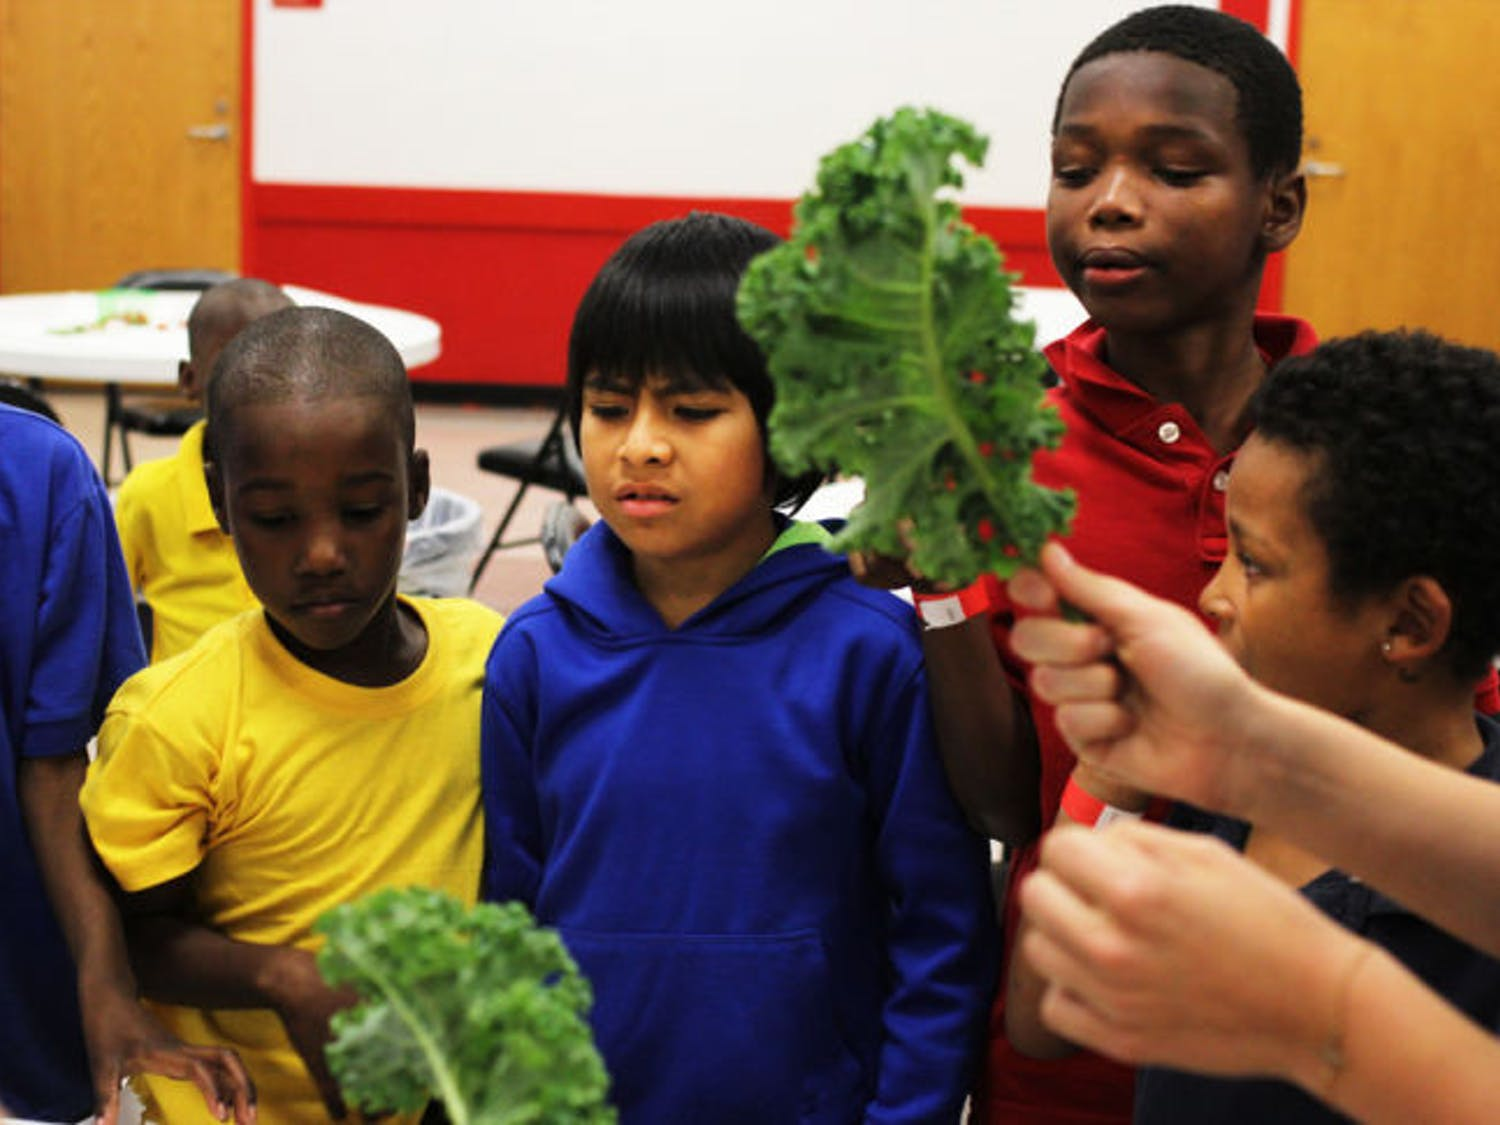 Children learn about fresh produce from Fostering Sustainable Behavior: Local Food Systems UF honors class students Wednesday afternoon at the Porters Community Center.